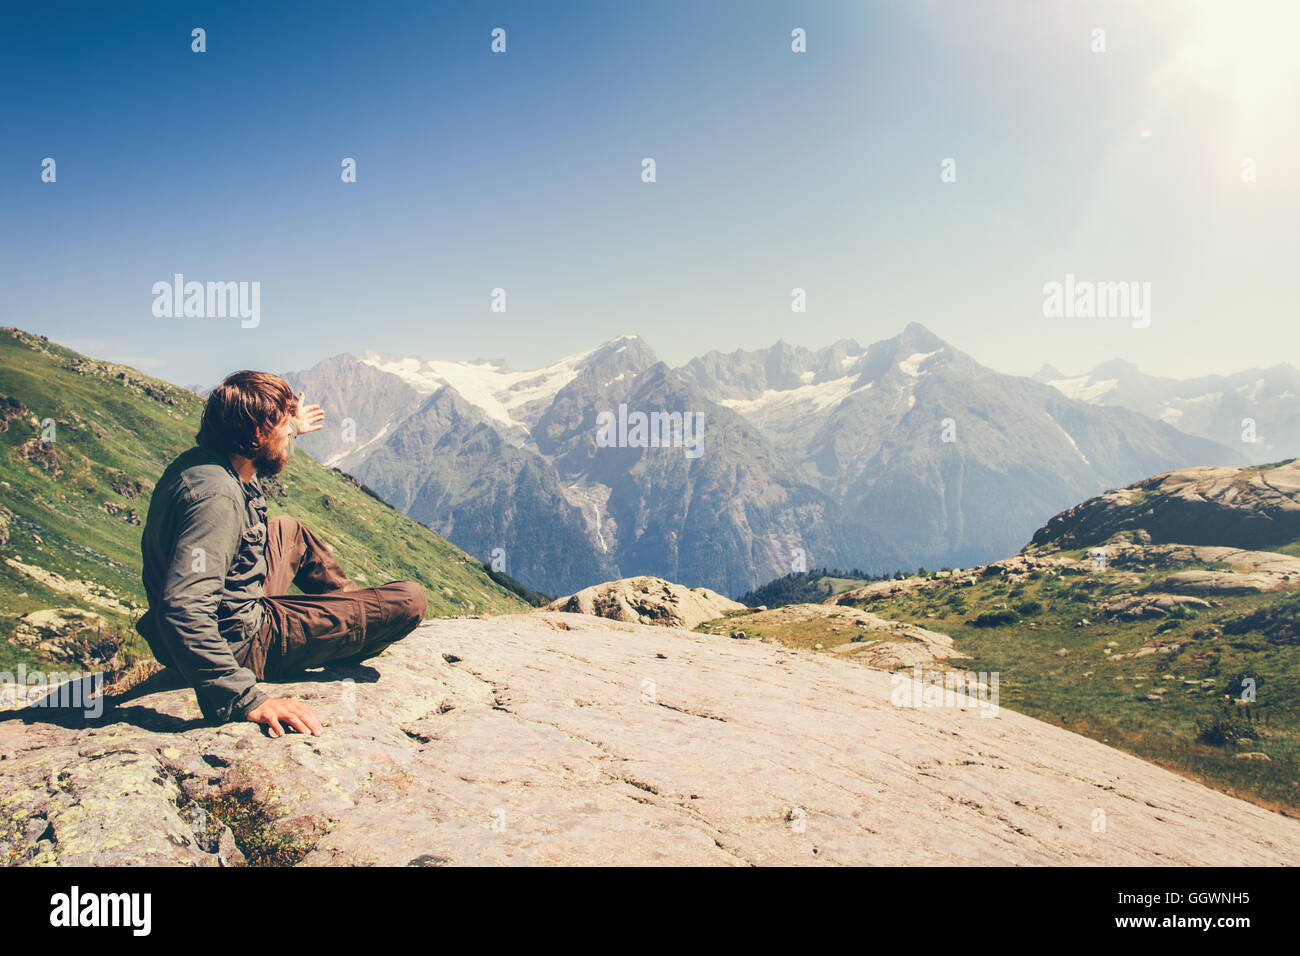 Man Traveler relaxing in mountains Travel Lifestyle concept scenic landscape on background summer vacations outdoor - Stock Image